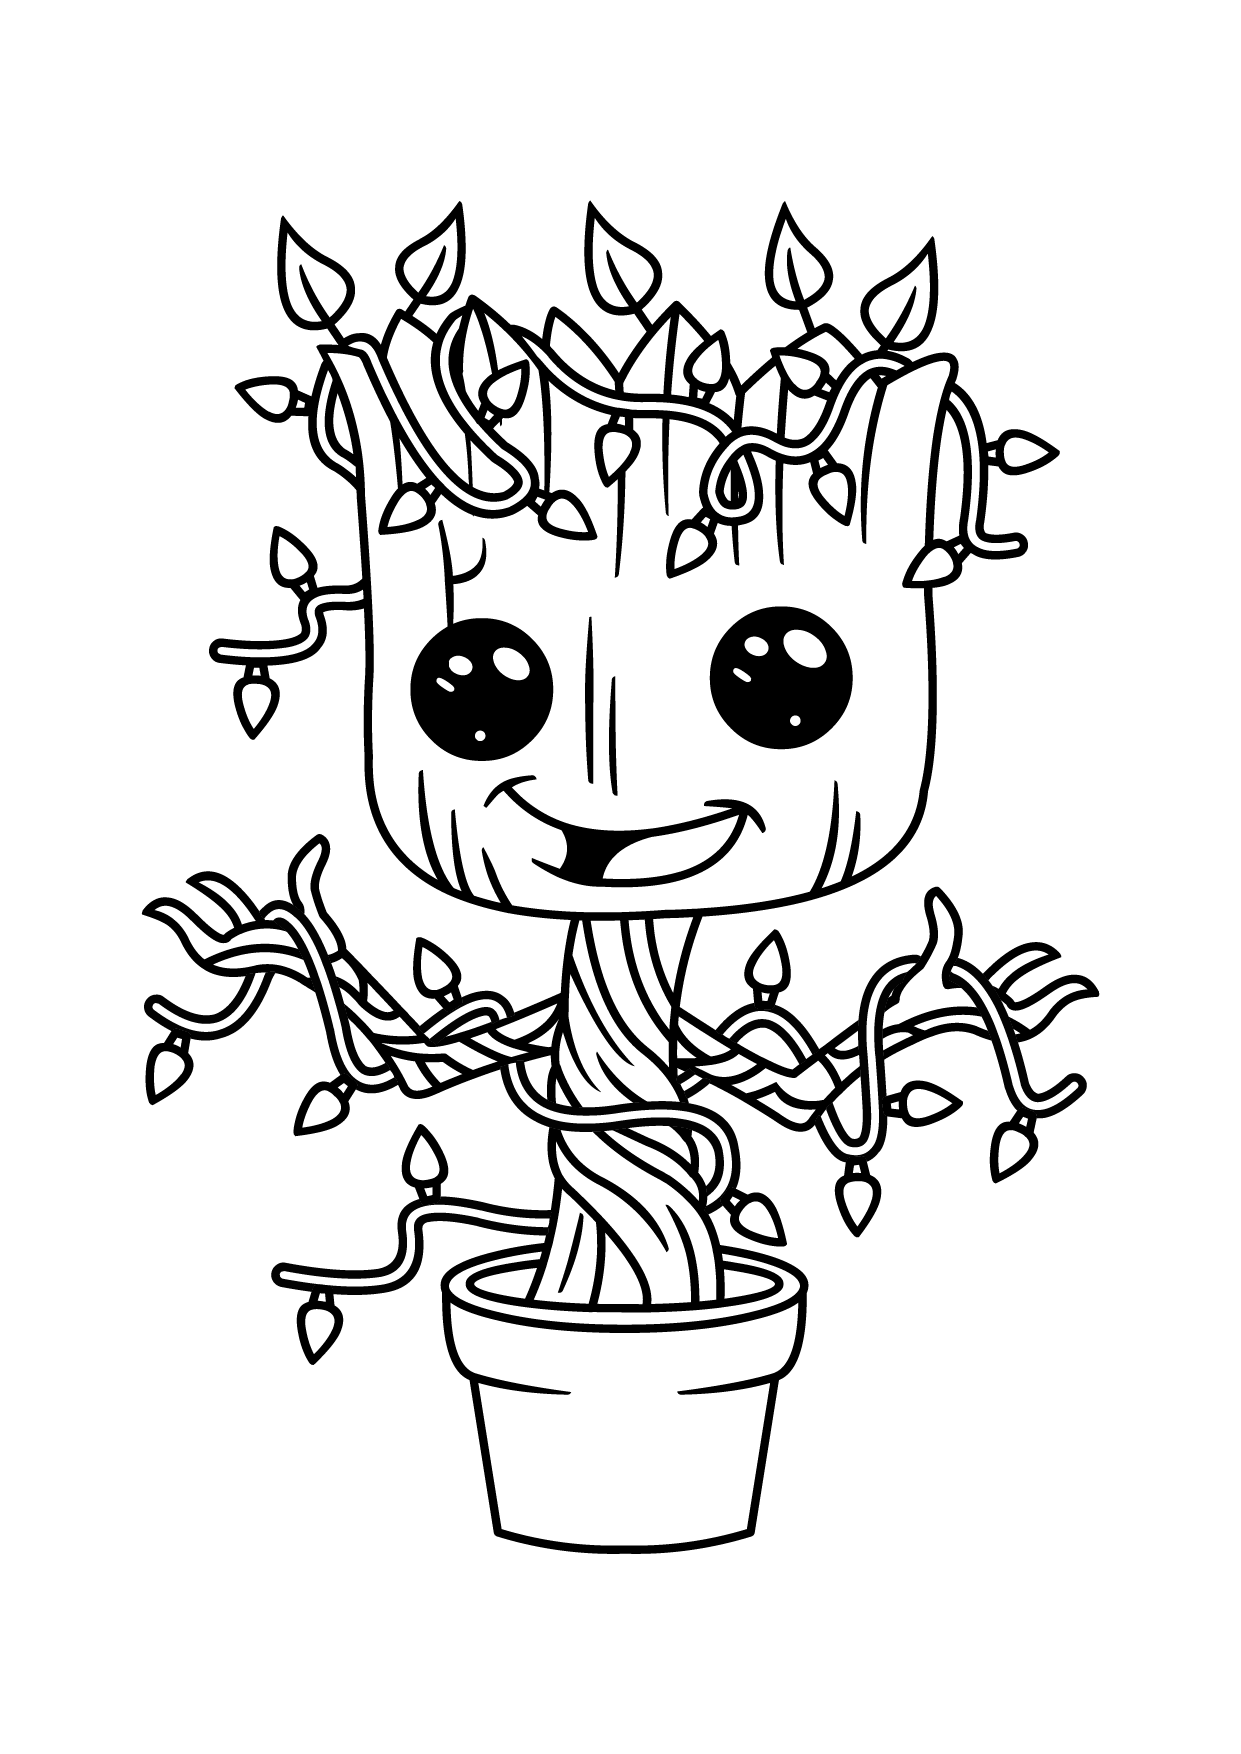 Simple Guardians of Galaxy coloring page for children : Groot with littles leaves